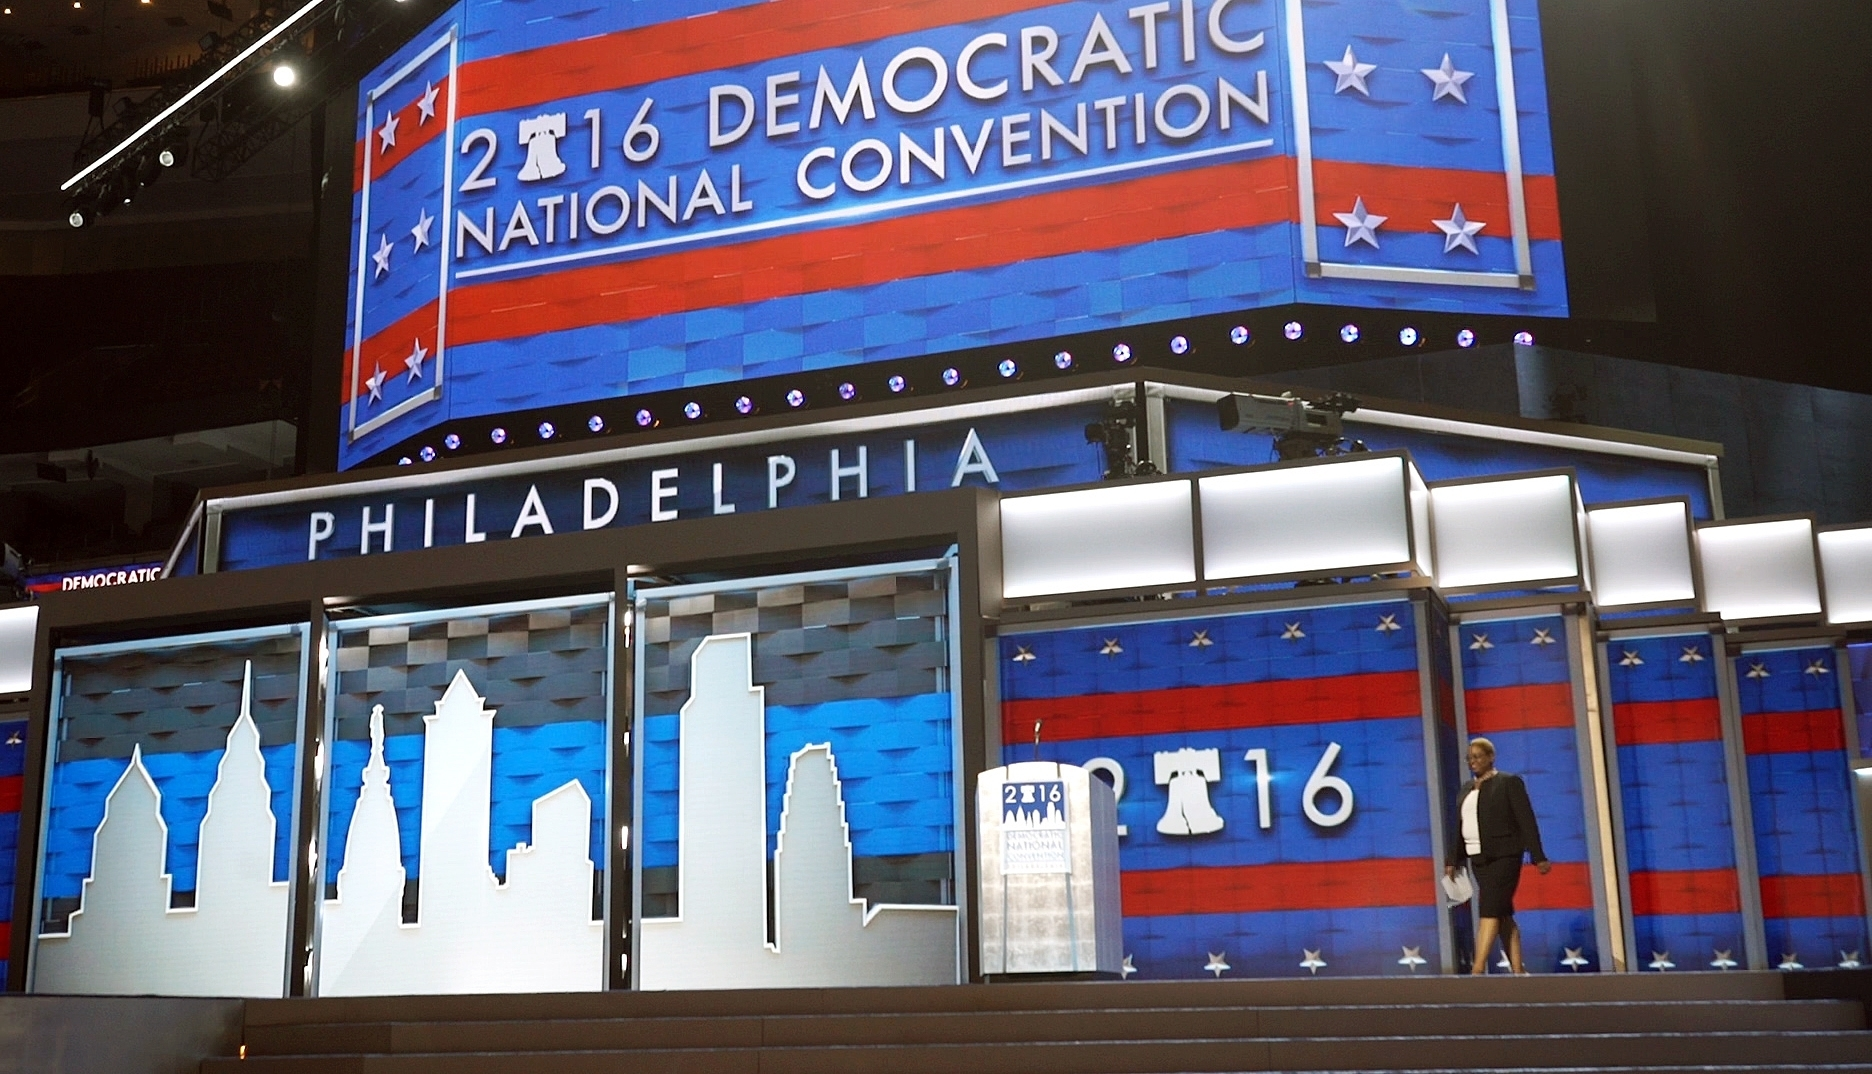 Leah Daughtry, CEO of the Democratic National Convention Committee, walks onto the stage Friday, July 22, 2016, at the Wells Fargo Center in Philadelphia, where the convention is scheduled to convene on Monday. (AP Photo/Dake Kang)